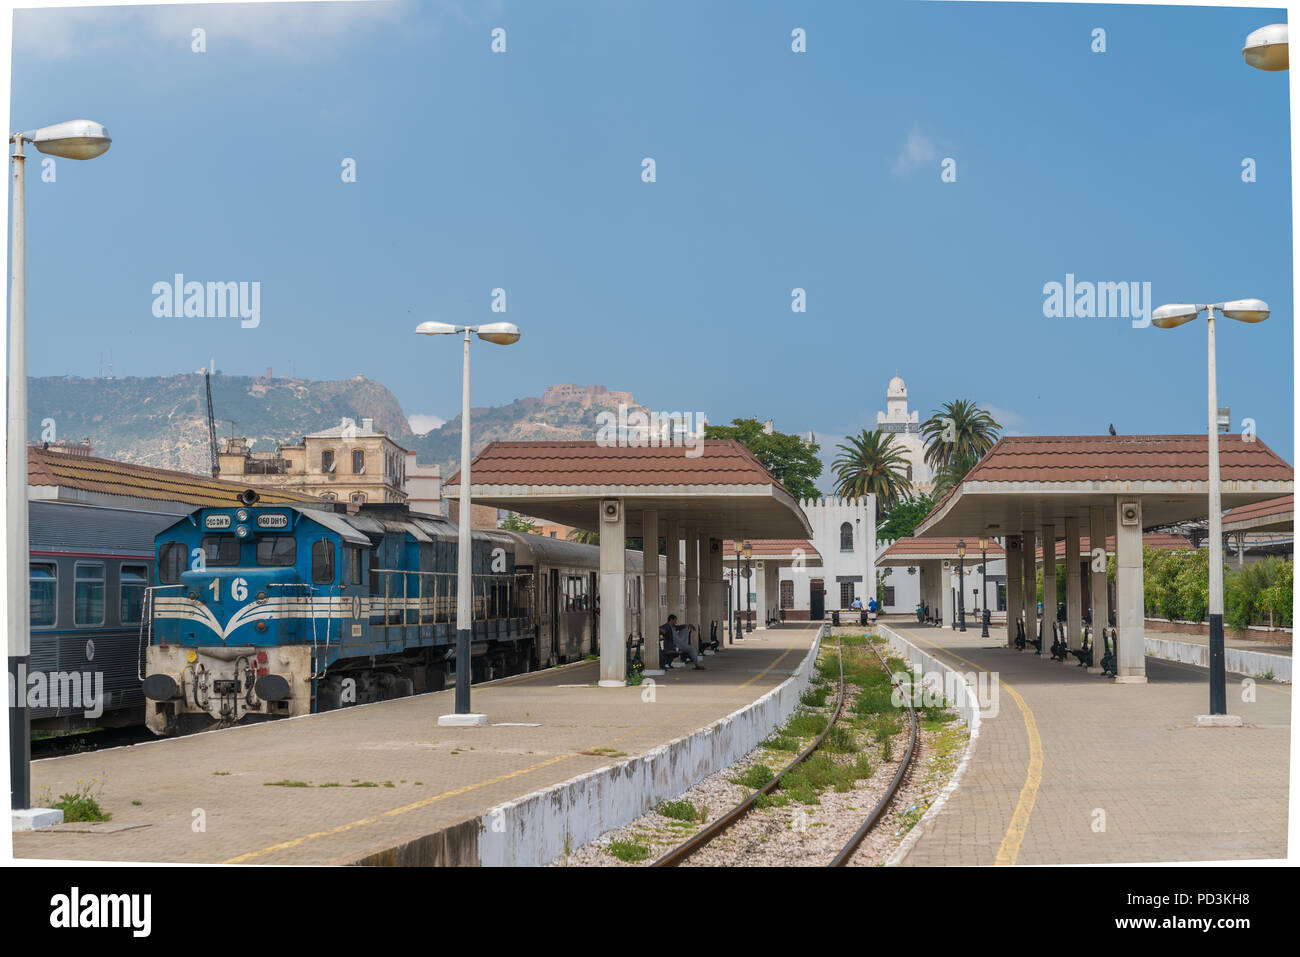 Passenger train at Oran Station in Algeria - Stock Image